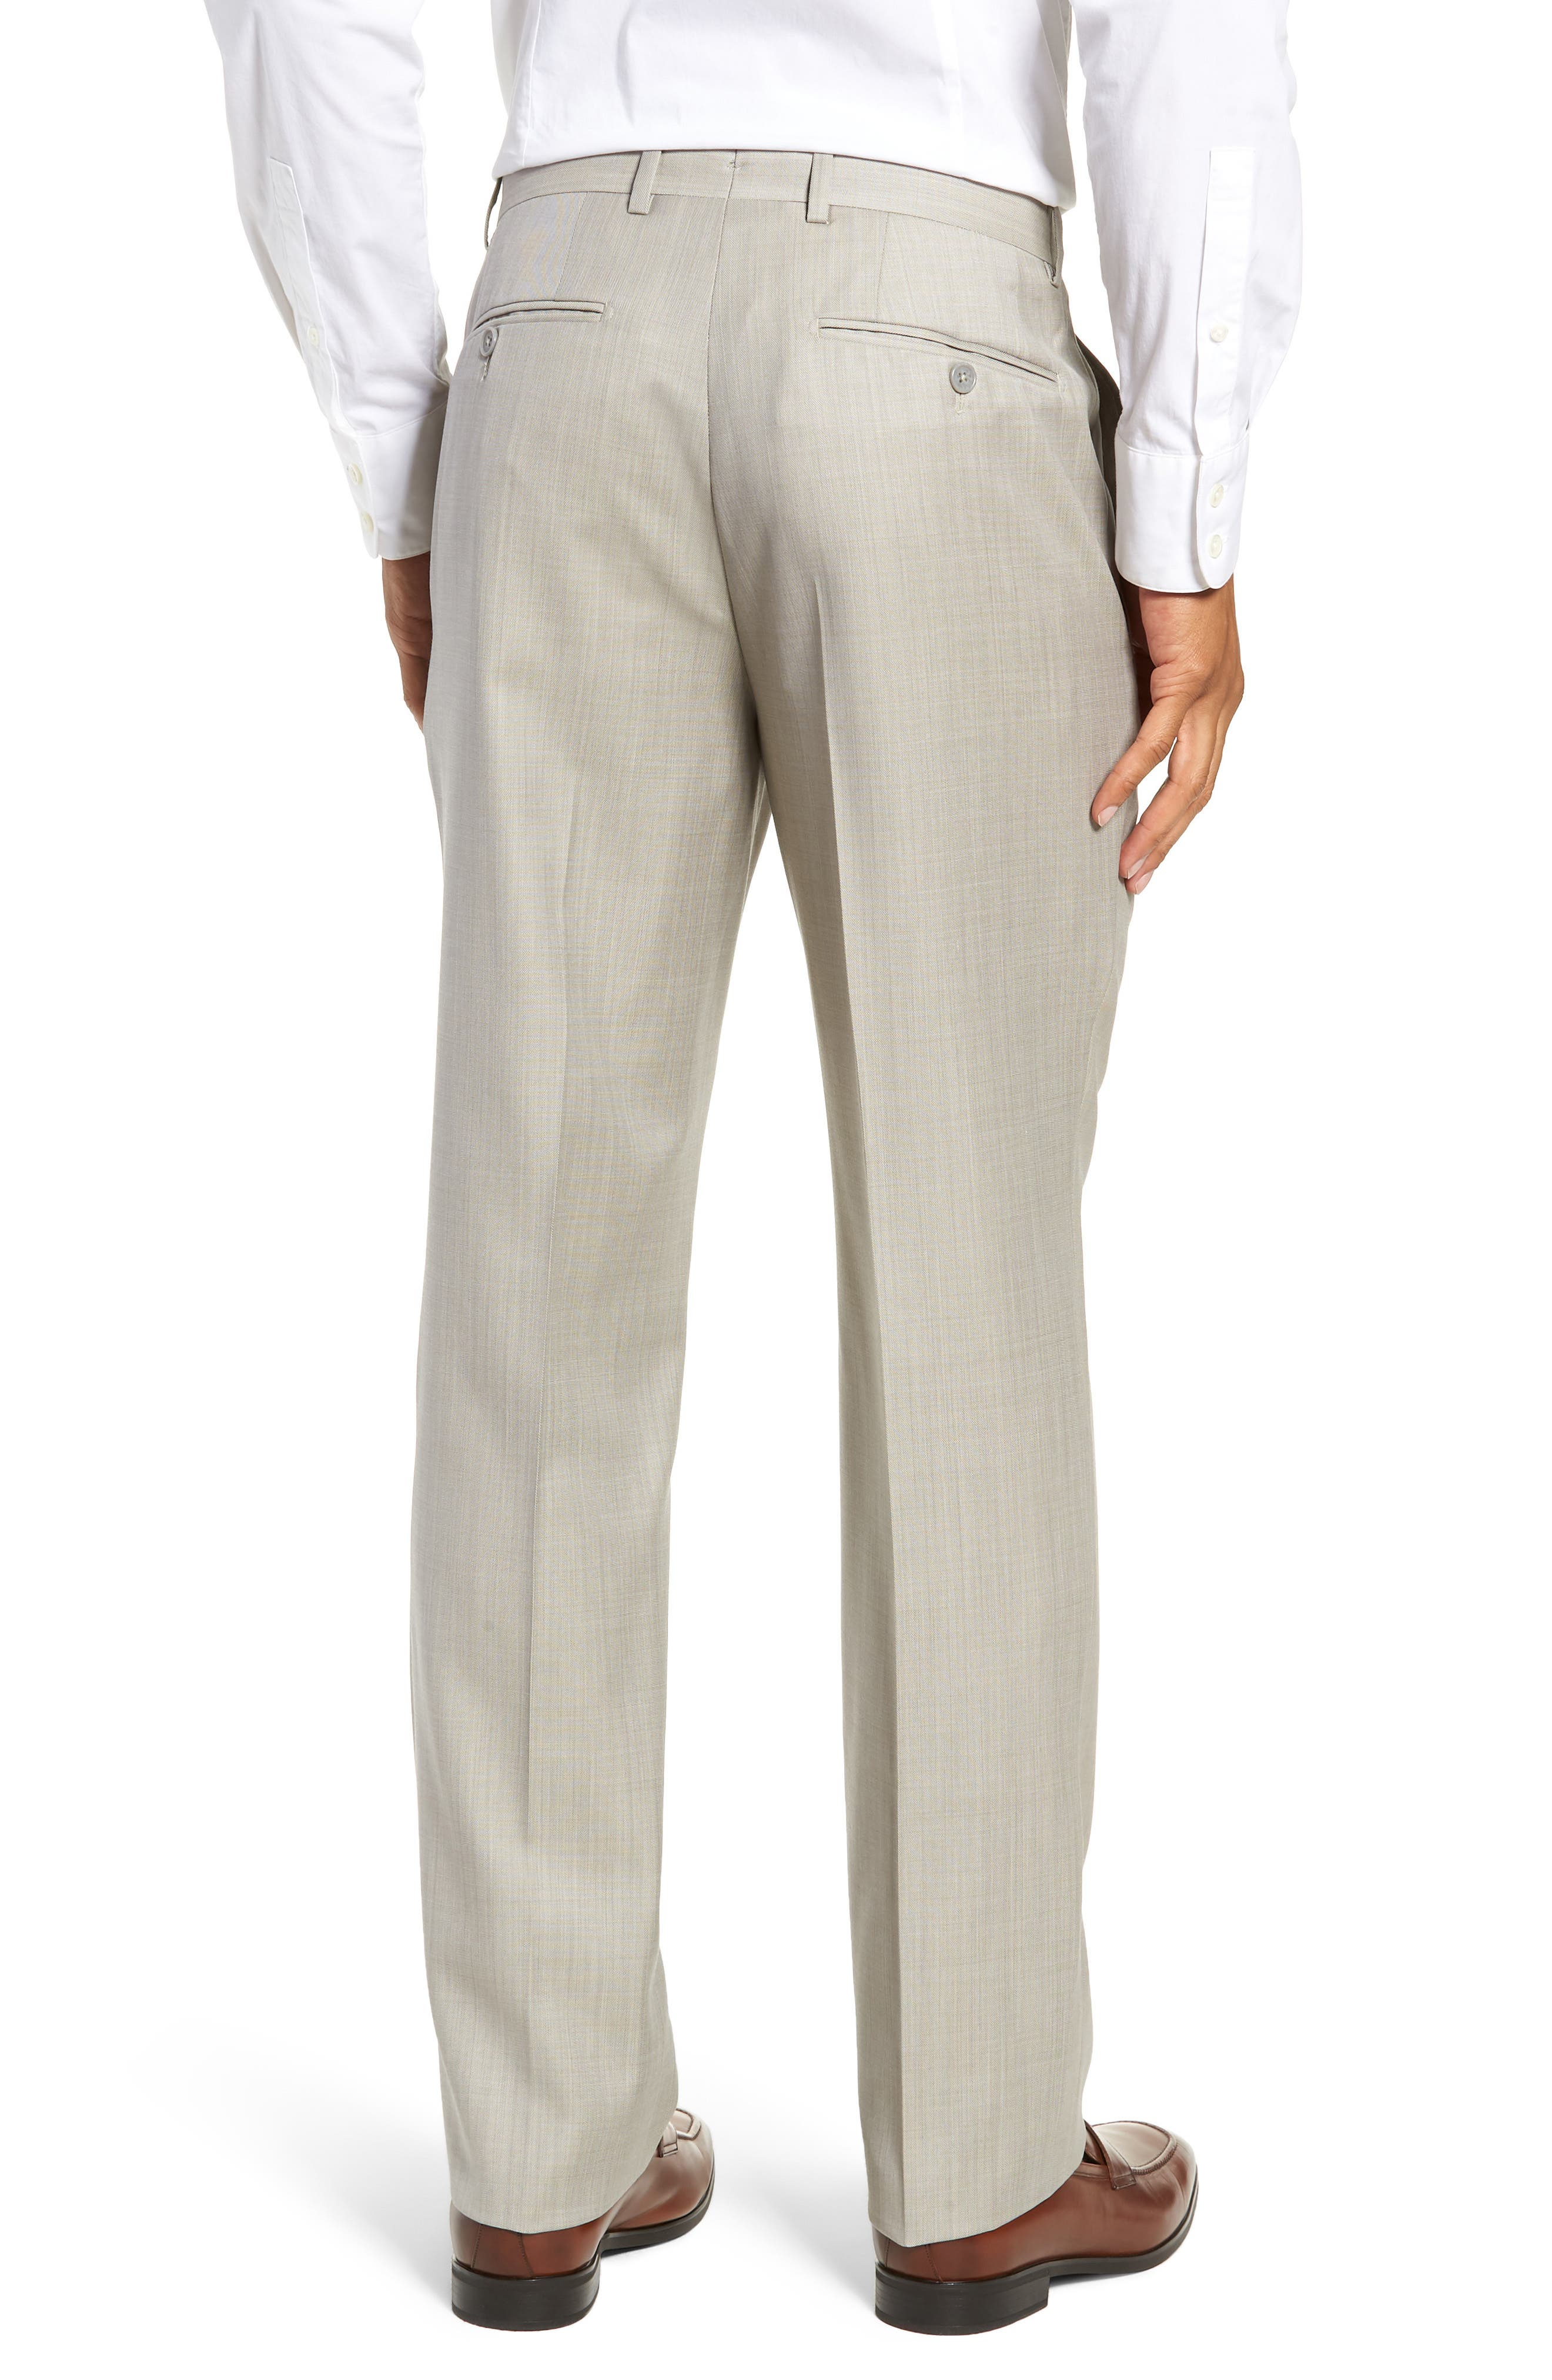 Flat Front Sharkskin Wool Trousers,                             Alternate thumbnail 2, color,                             SAND